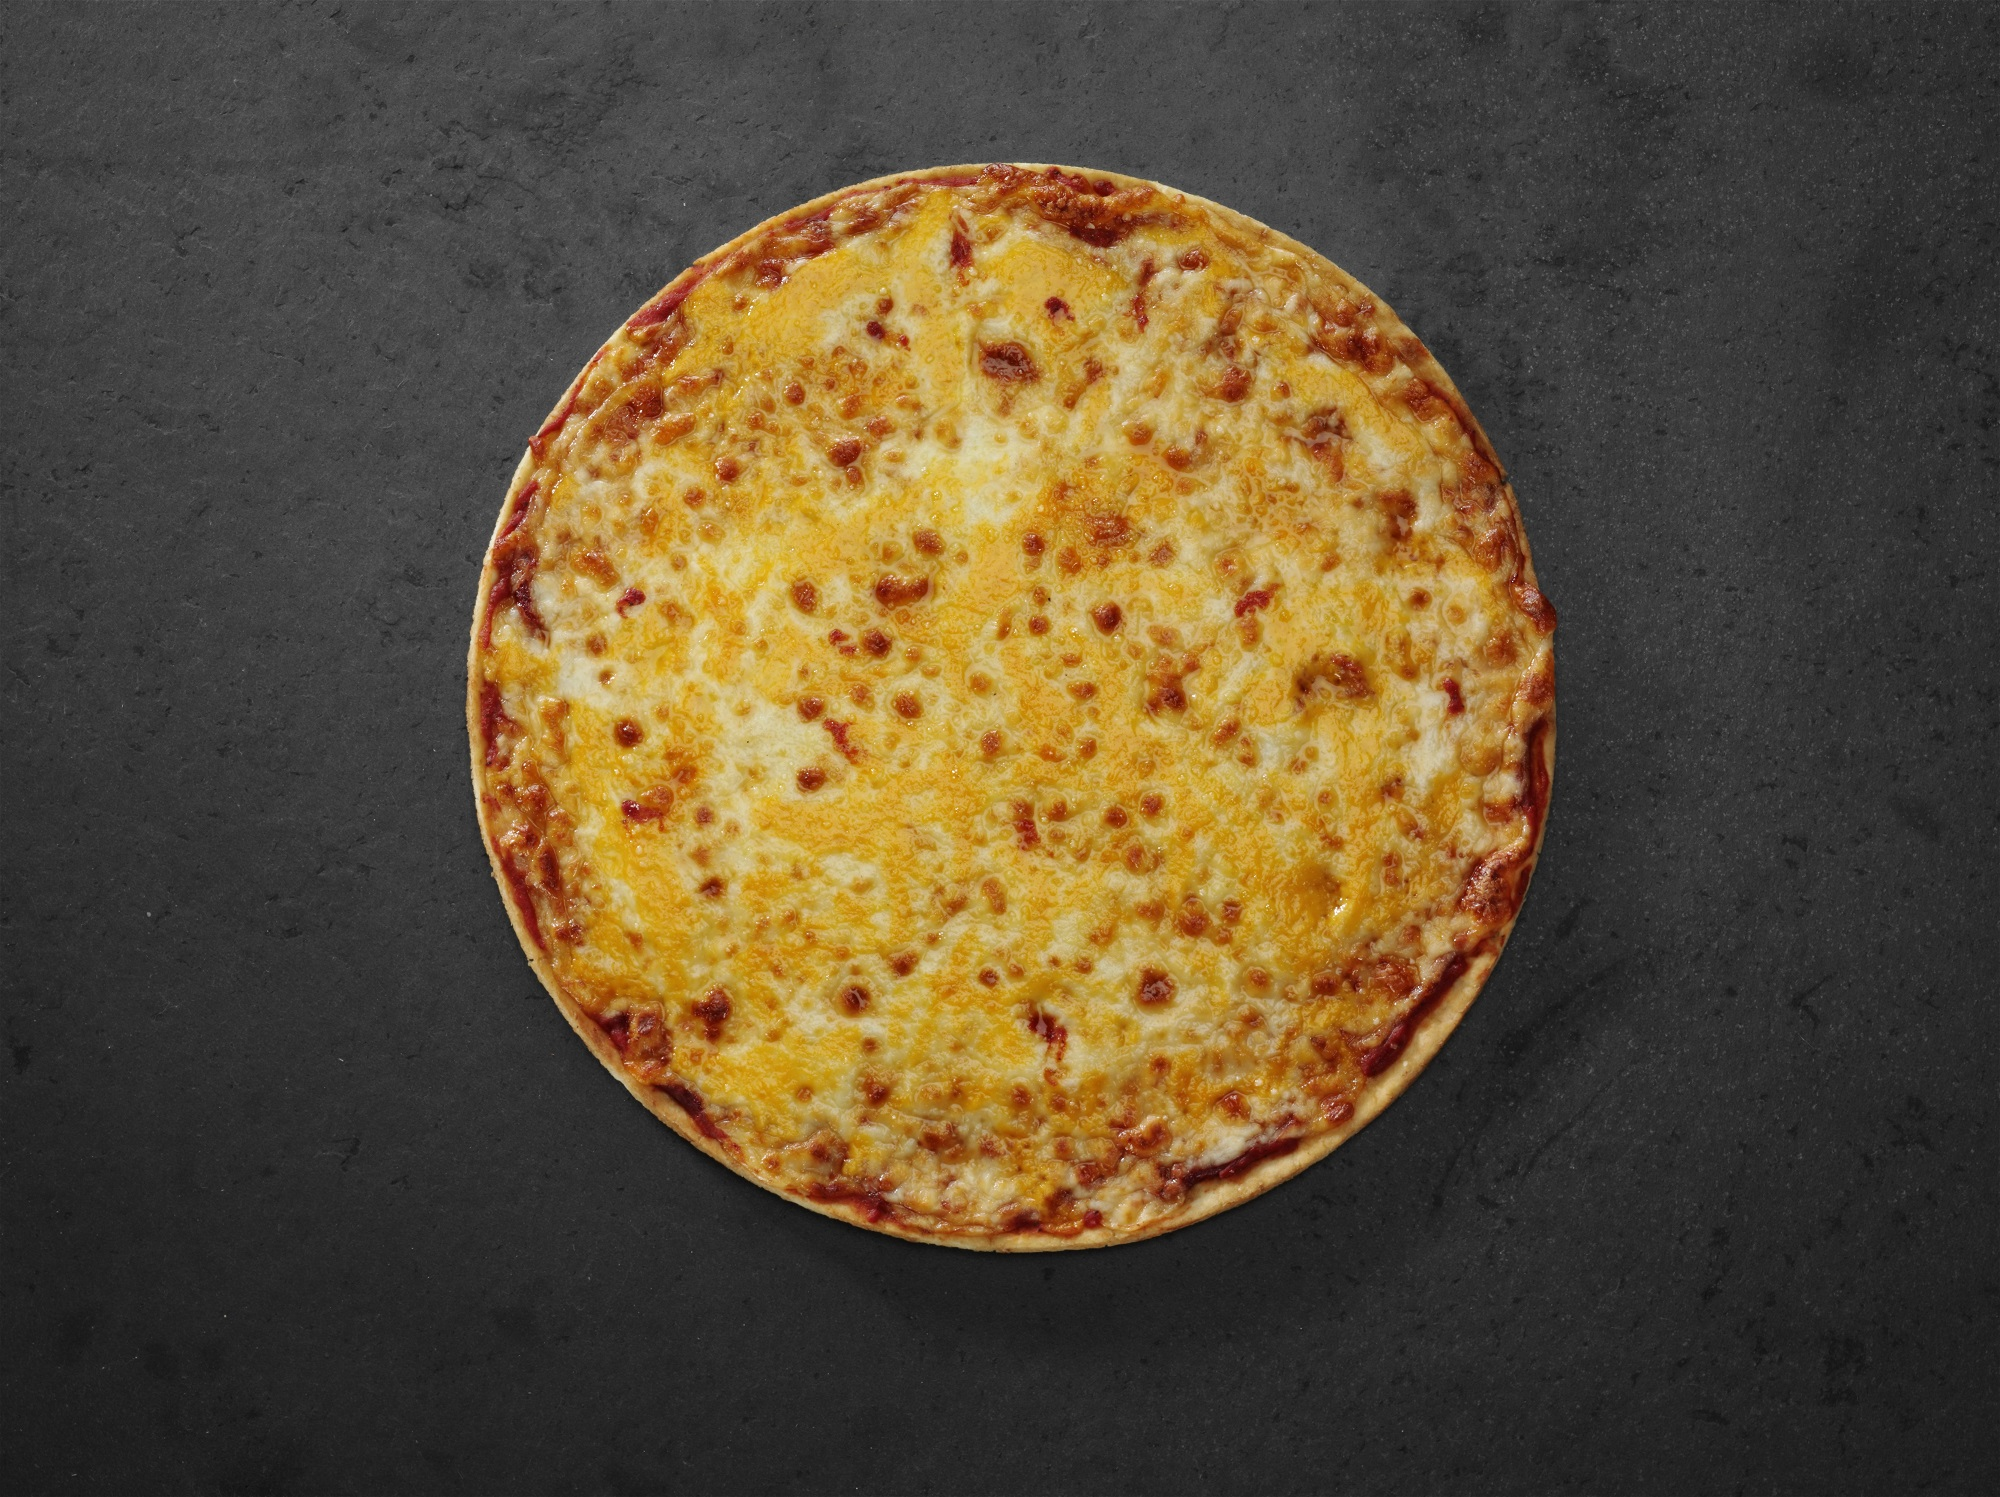 Festive Foods Premium Cheese Pizza